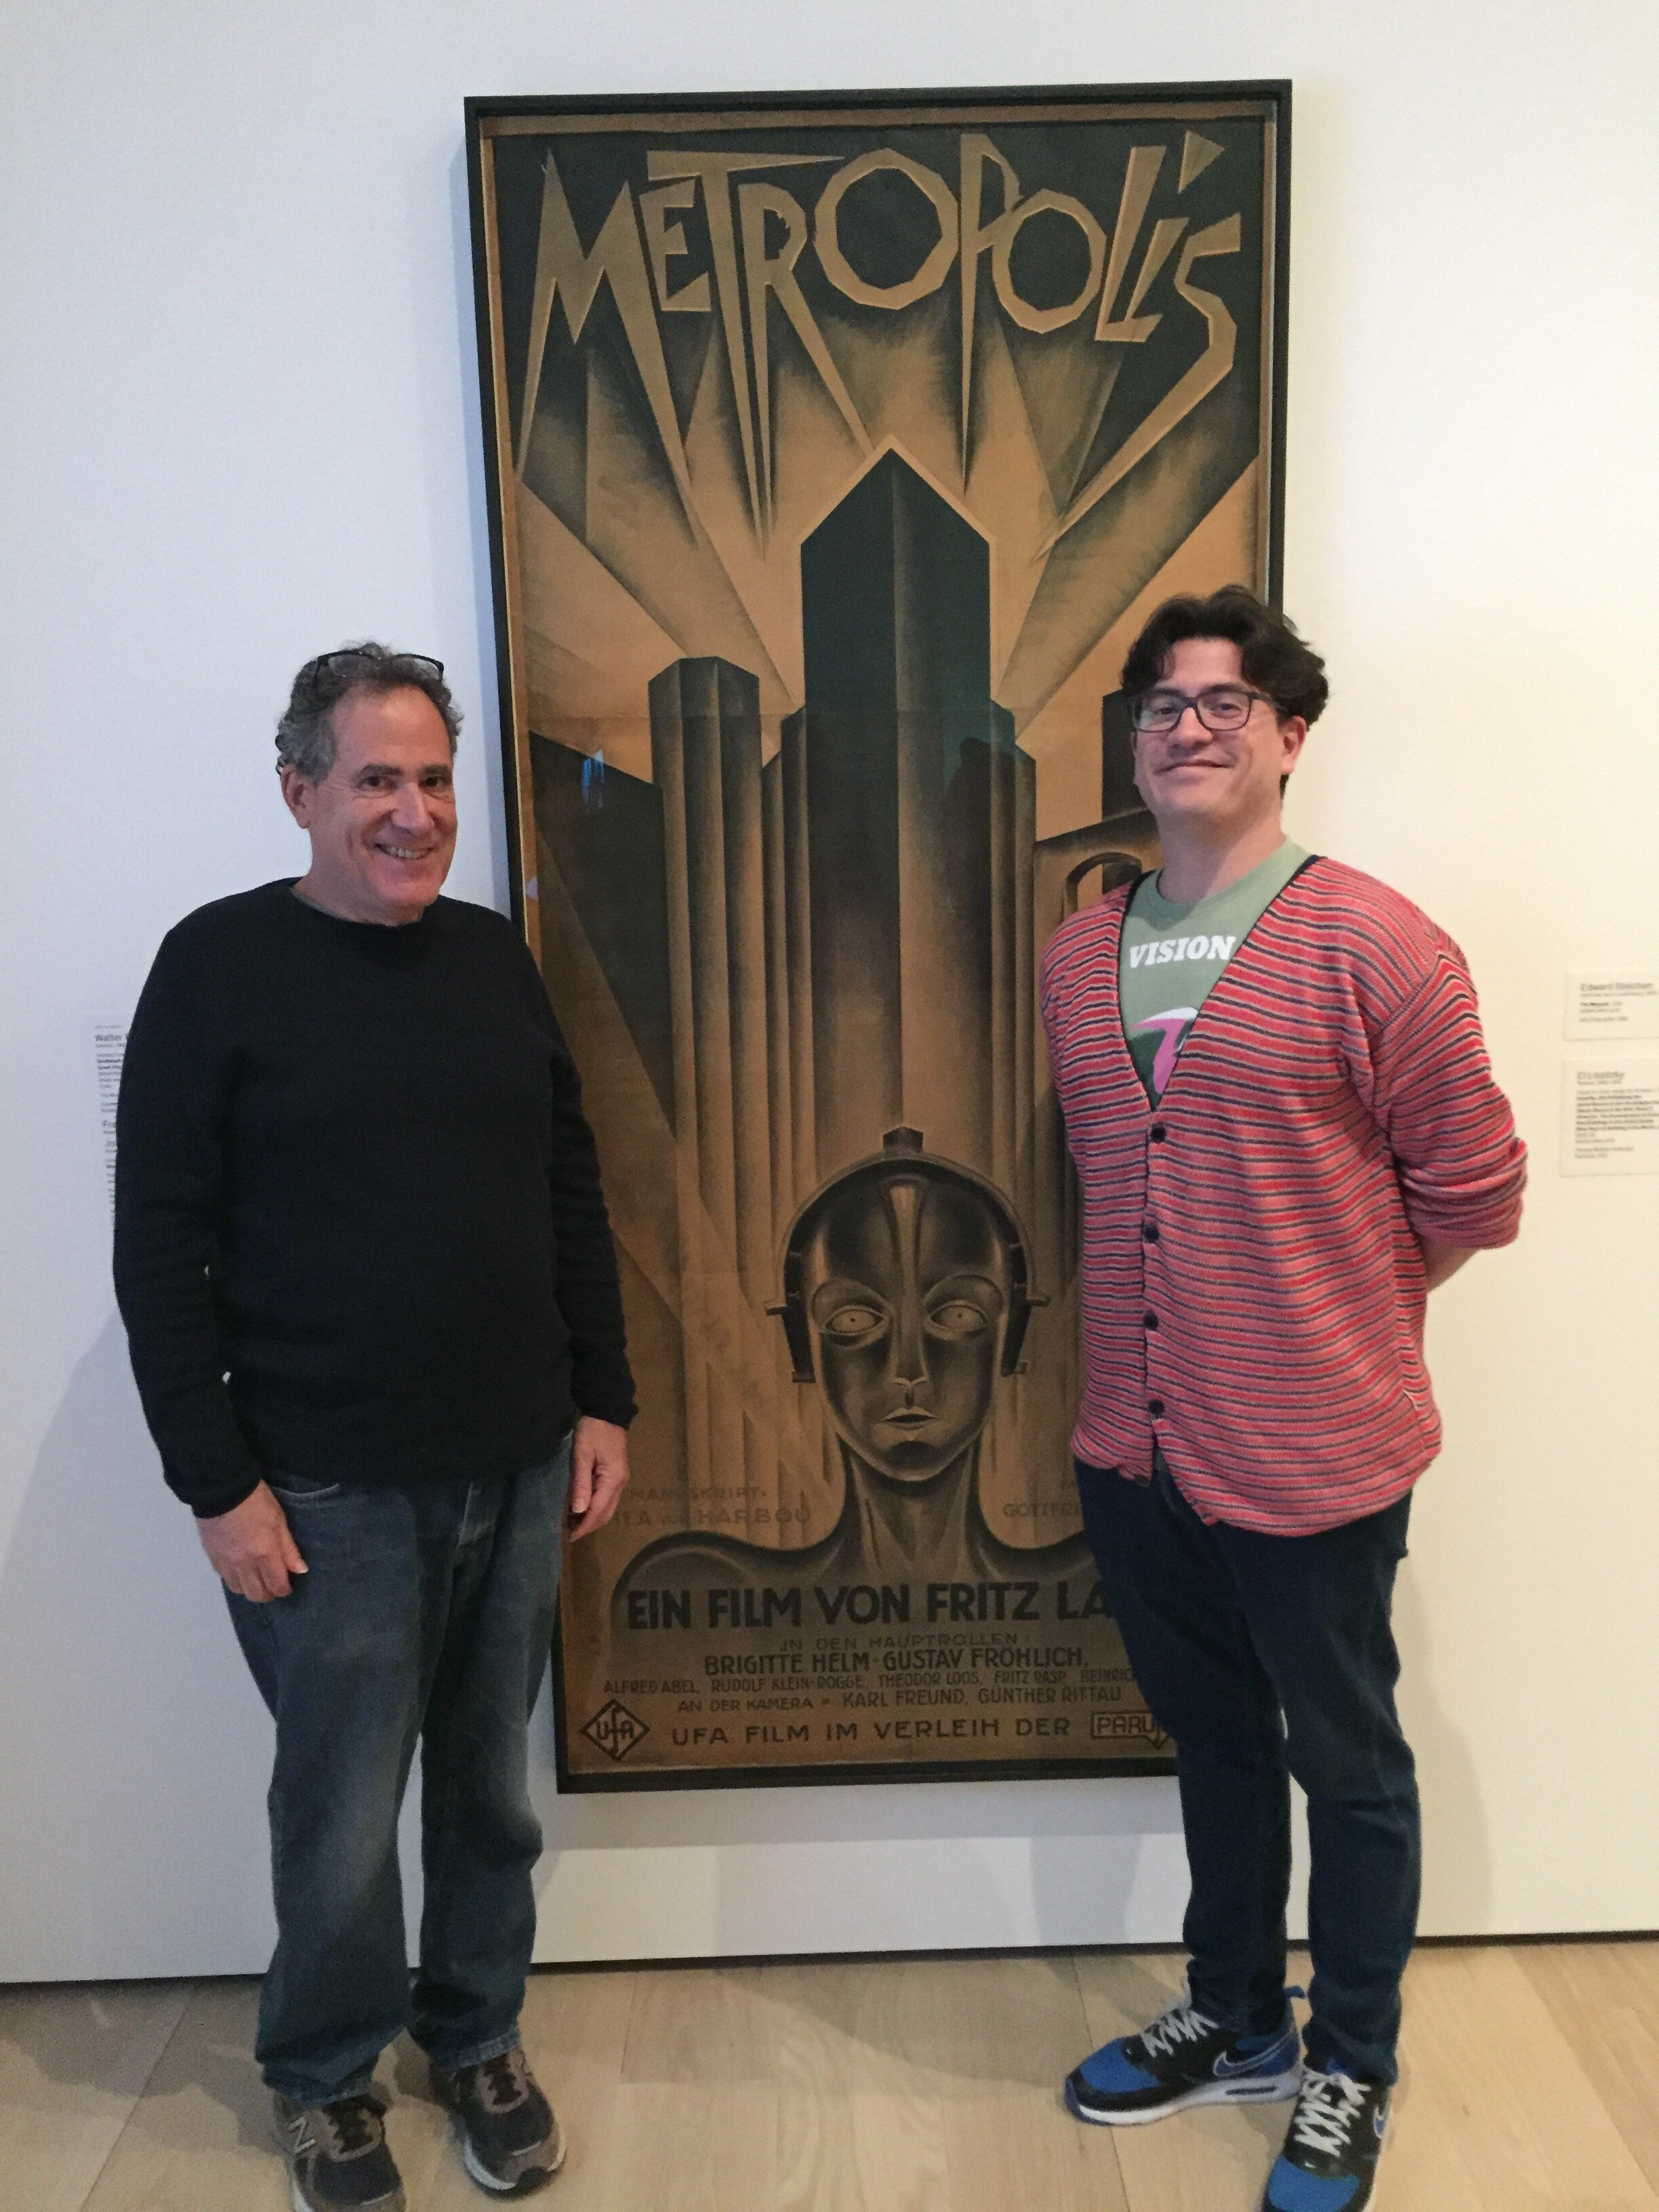 Jon Gartenberg, GME PResident and Juan Manuel Dominguez, bafici programmer in front of an extremely rare poster from METROPOLIS (1927)